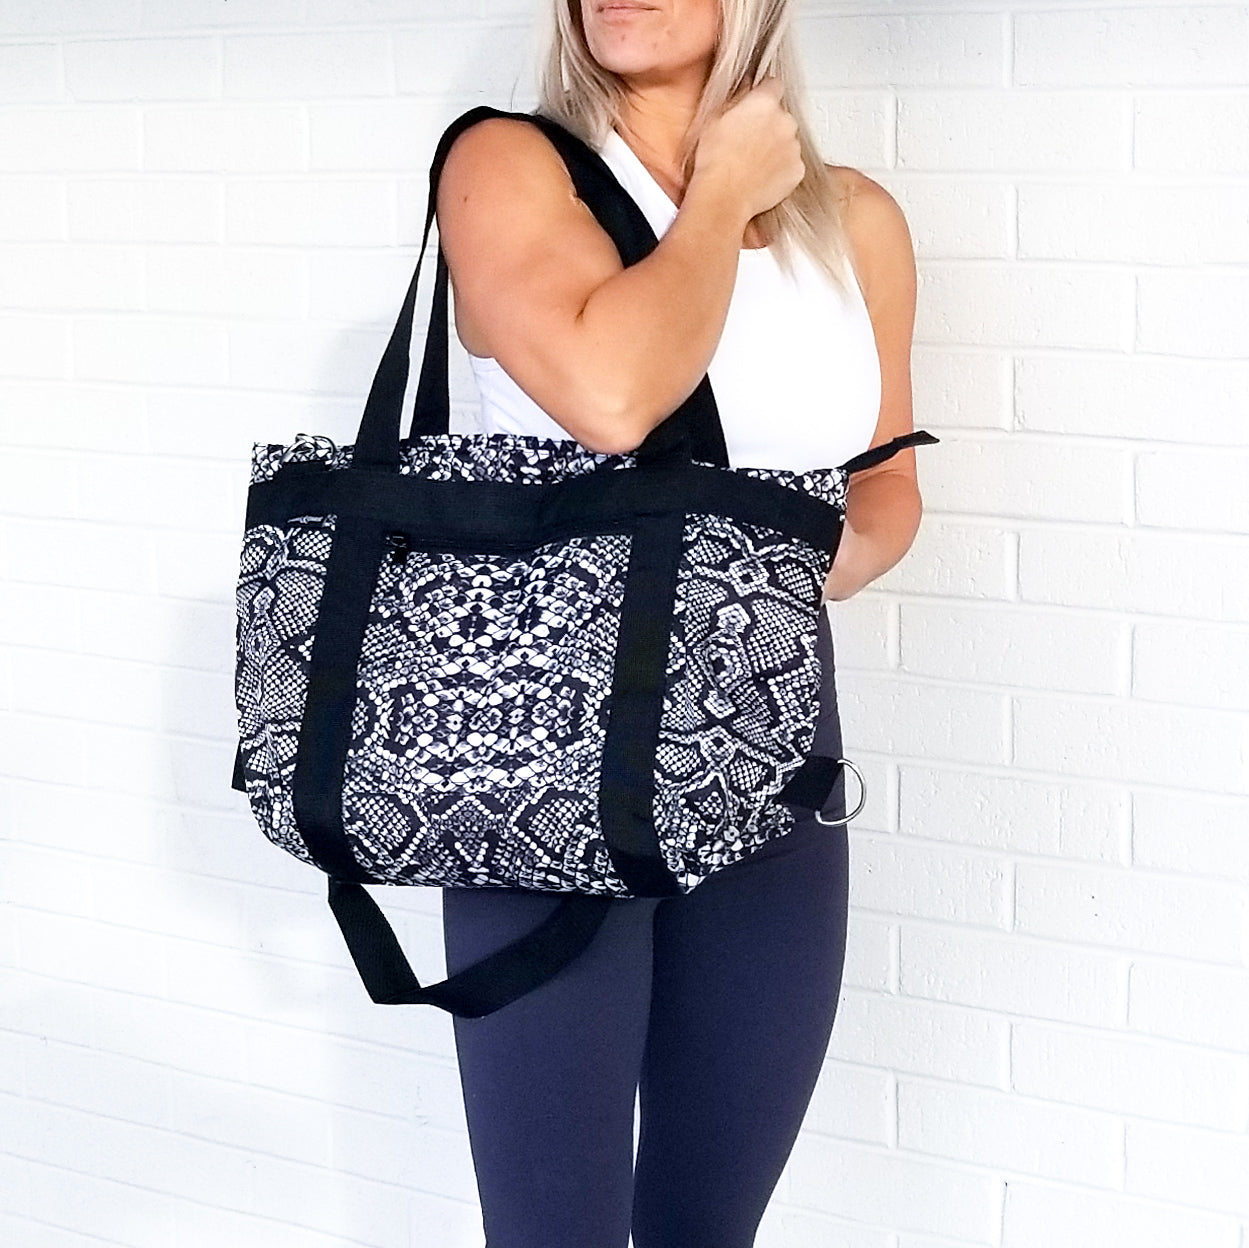 Snakeskin Gym Bag